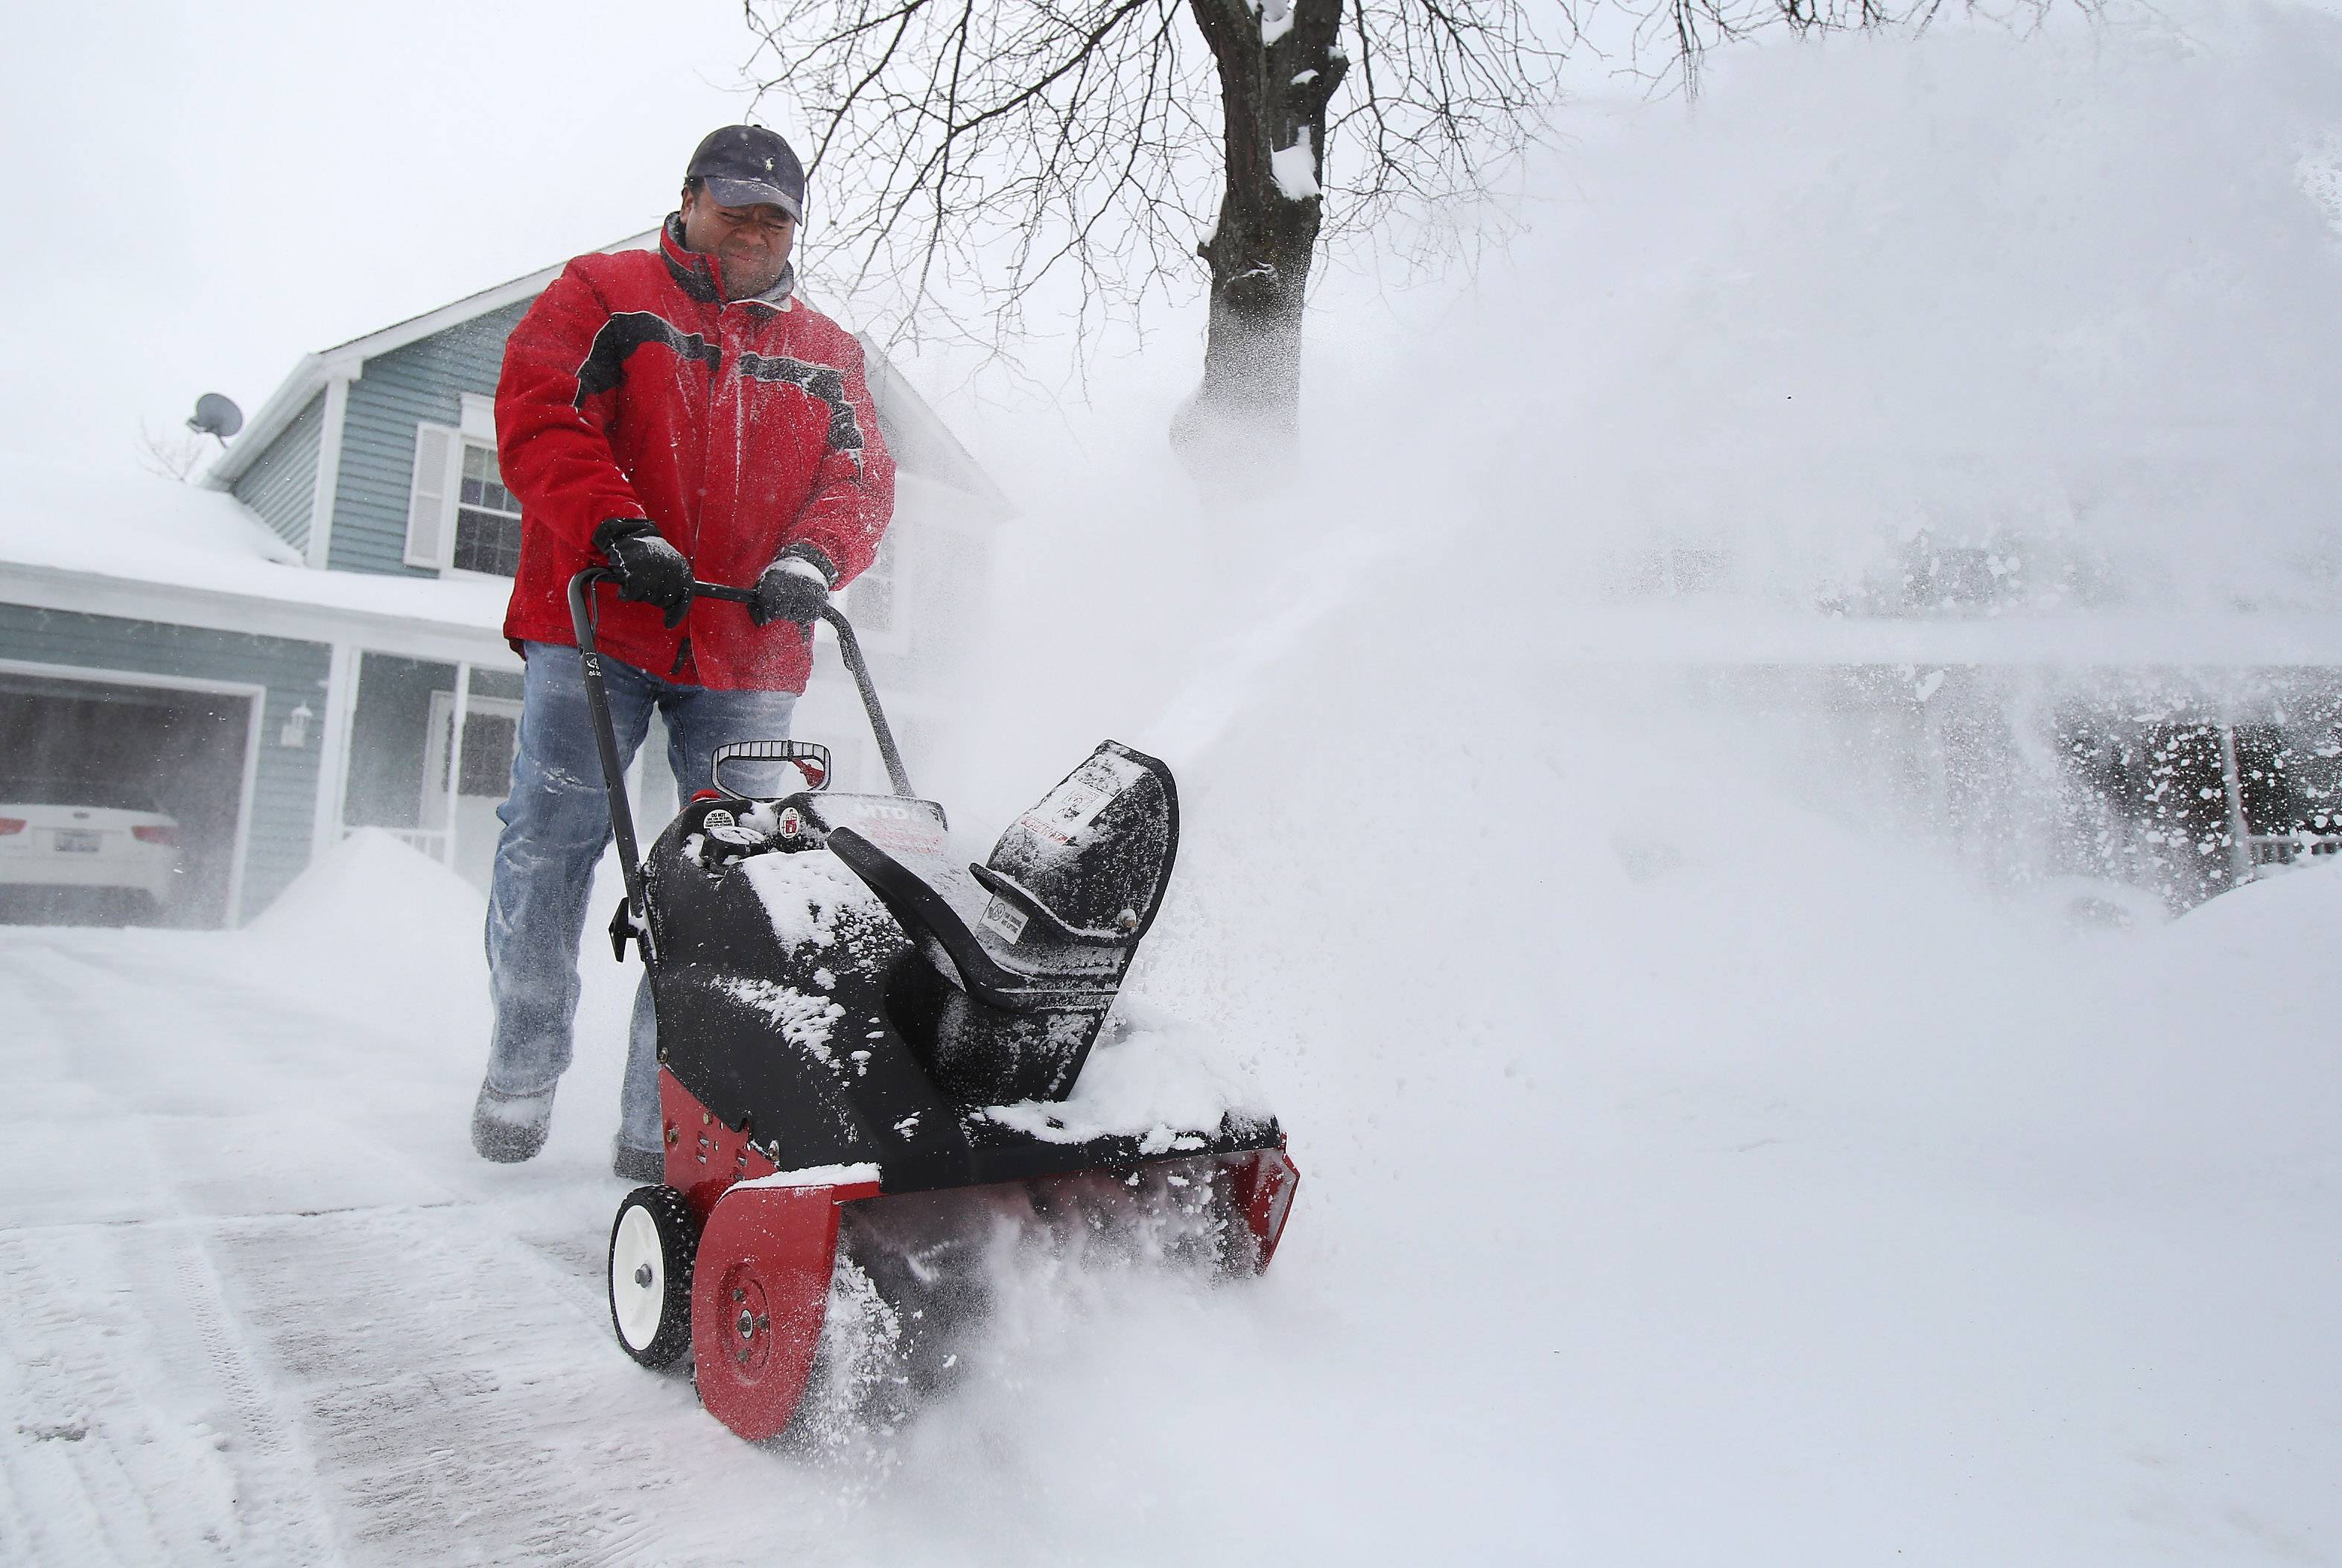 Mundelein resident Jose Ruiz clears his driveway along Bristol Court with a snowblower Wednesday morning after an overnight snowstorm swept through Lake County. A winter weather advisory remains in effect for the suburbs until noon today.